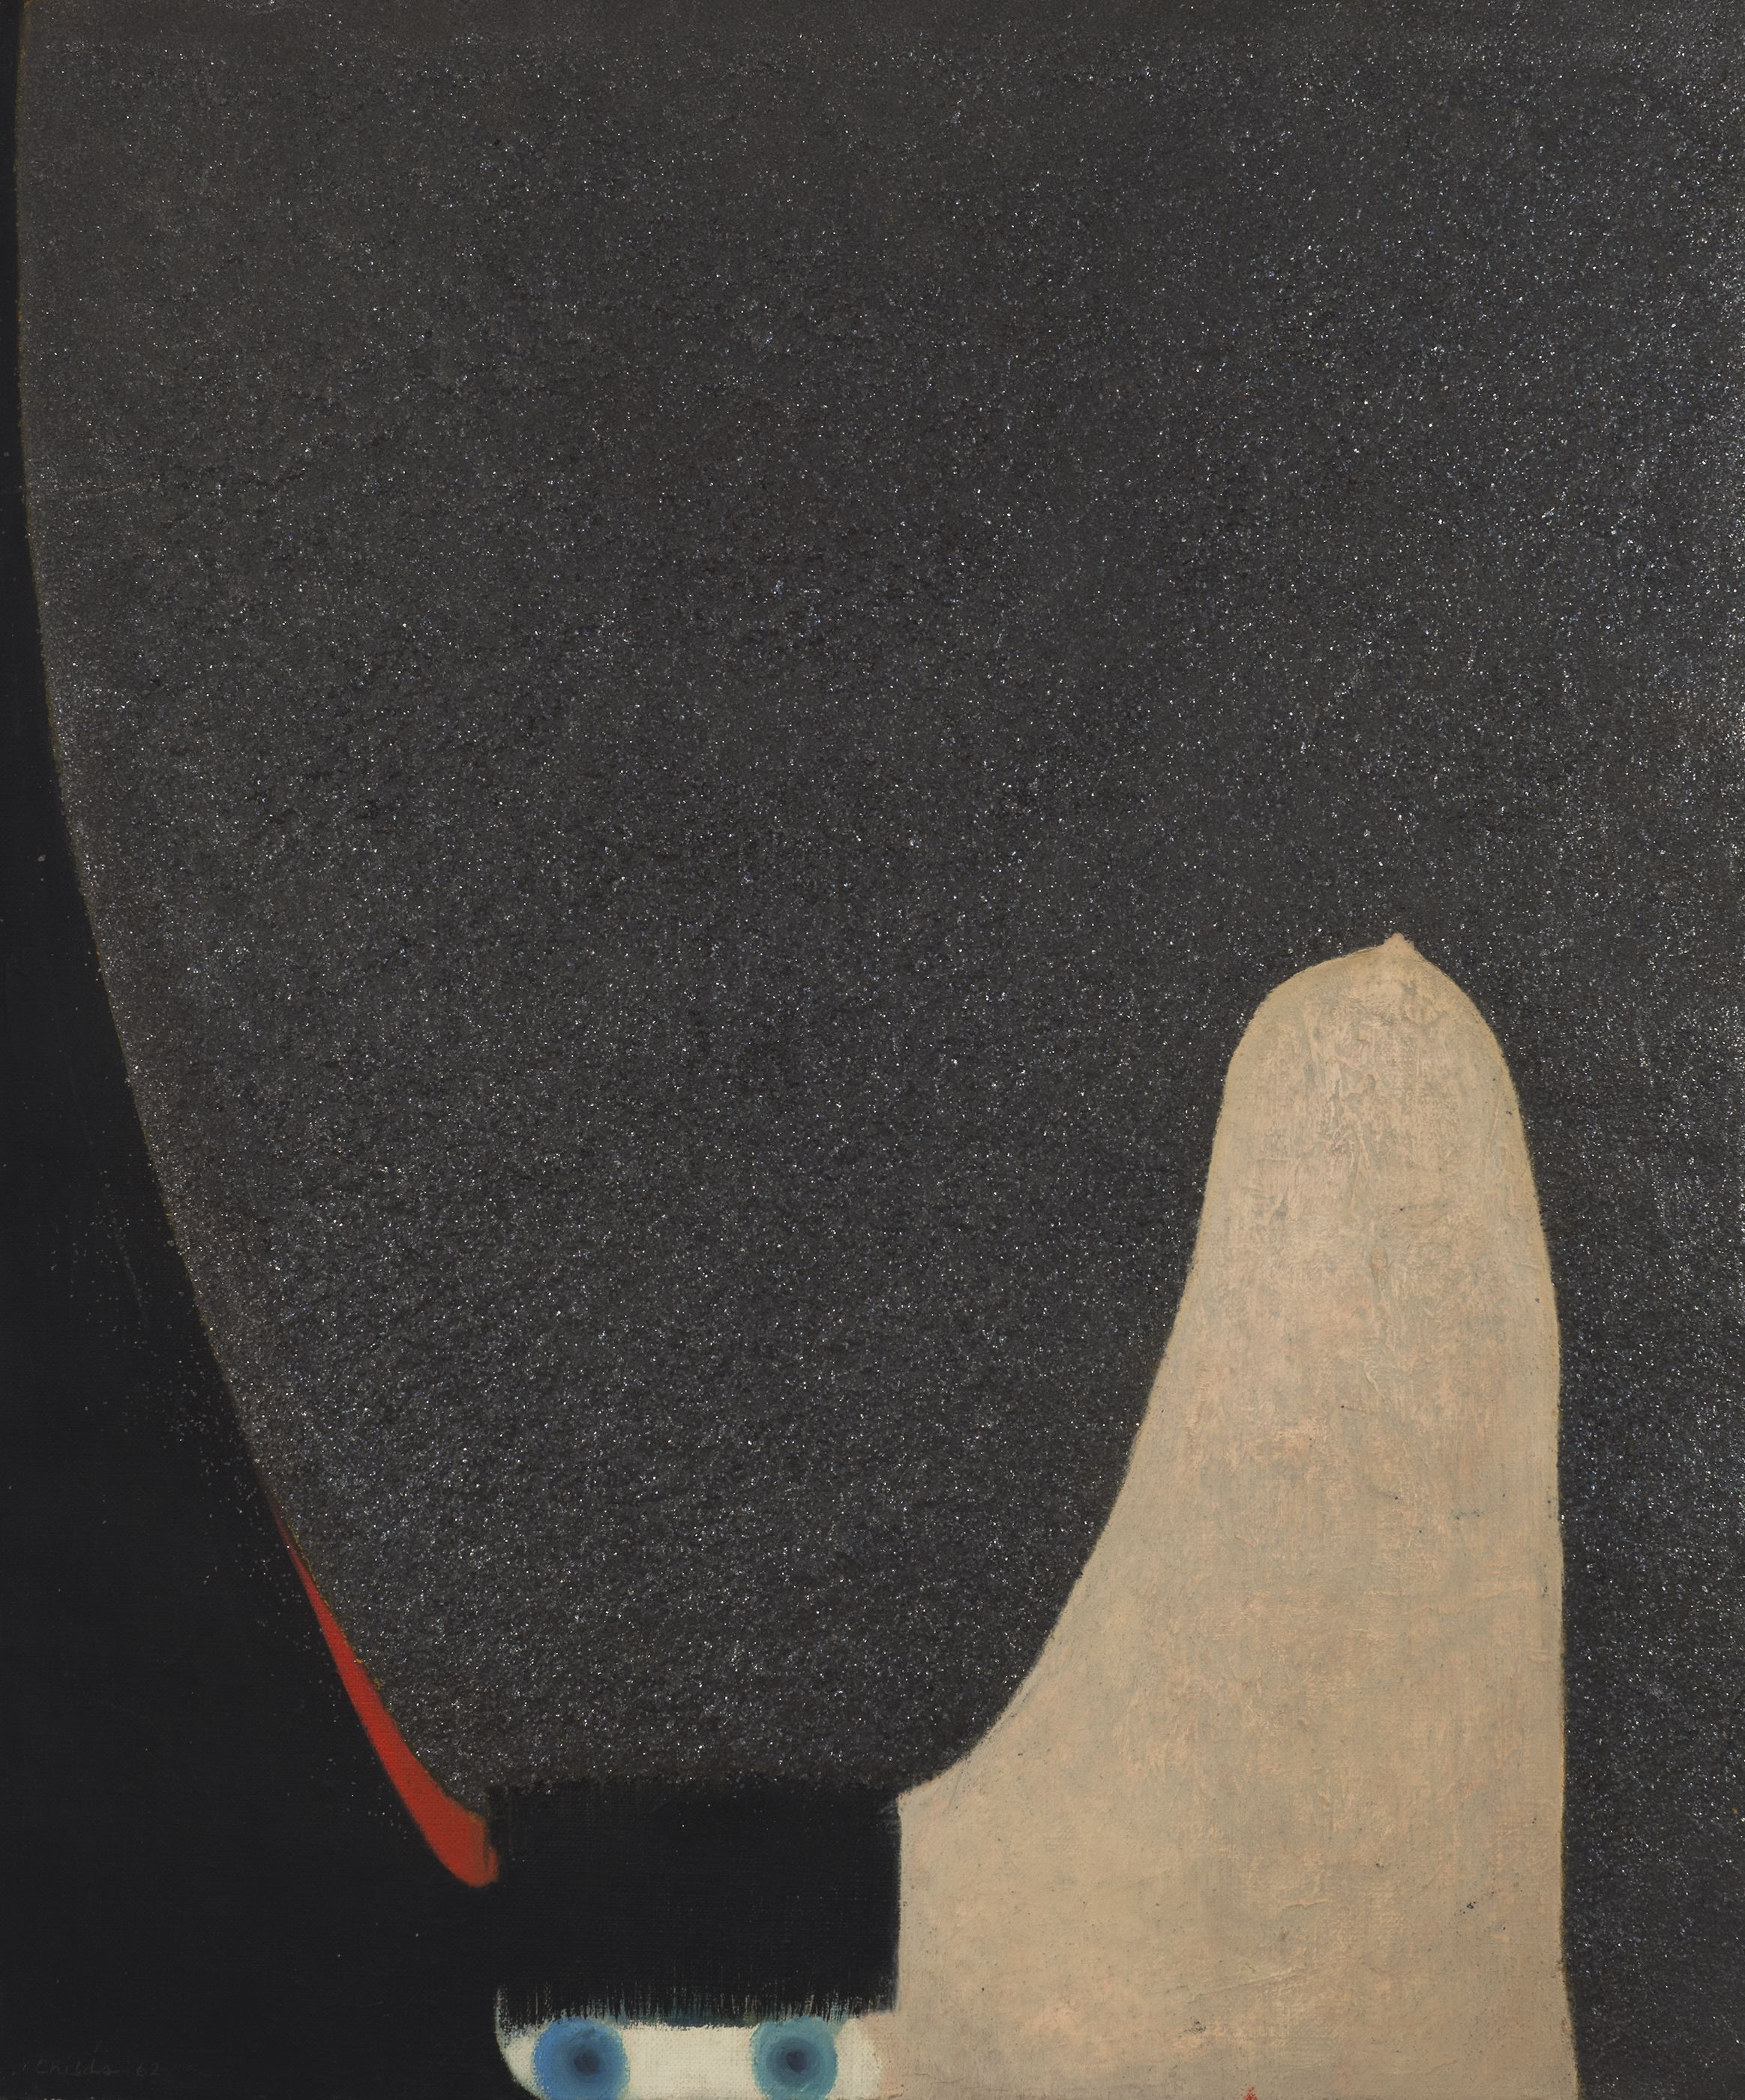 Bernard Childs  (1910-1985)  Carmen , 1962 Oil, carborundum and graphite on canvas 21 3/4 x 18 1/4 inches 55.2 x 46.4 cm